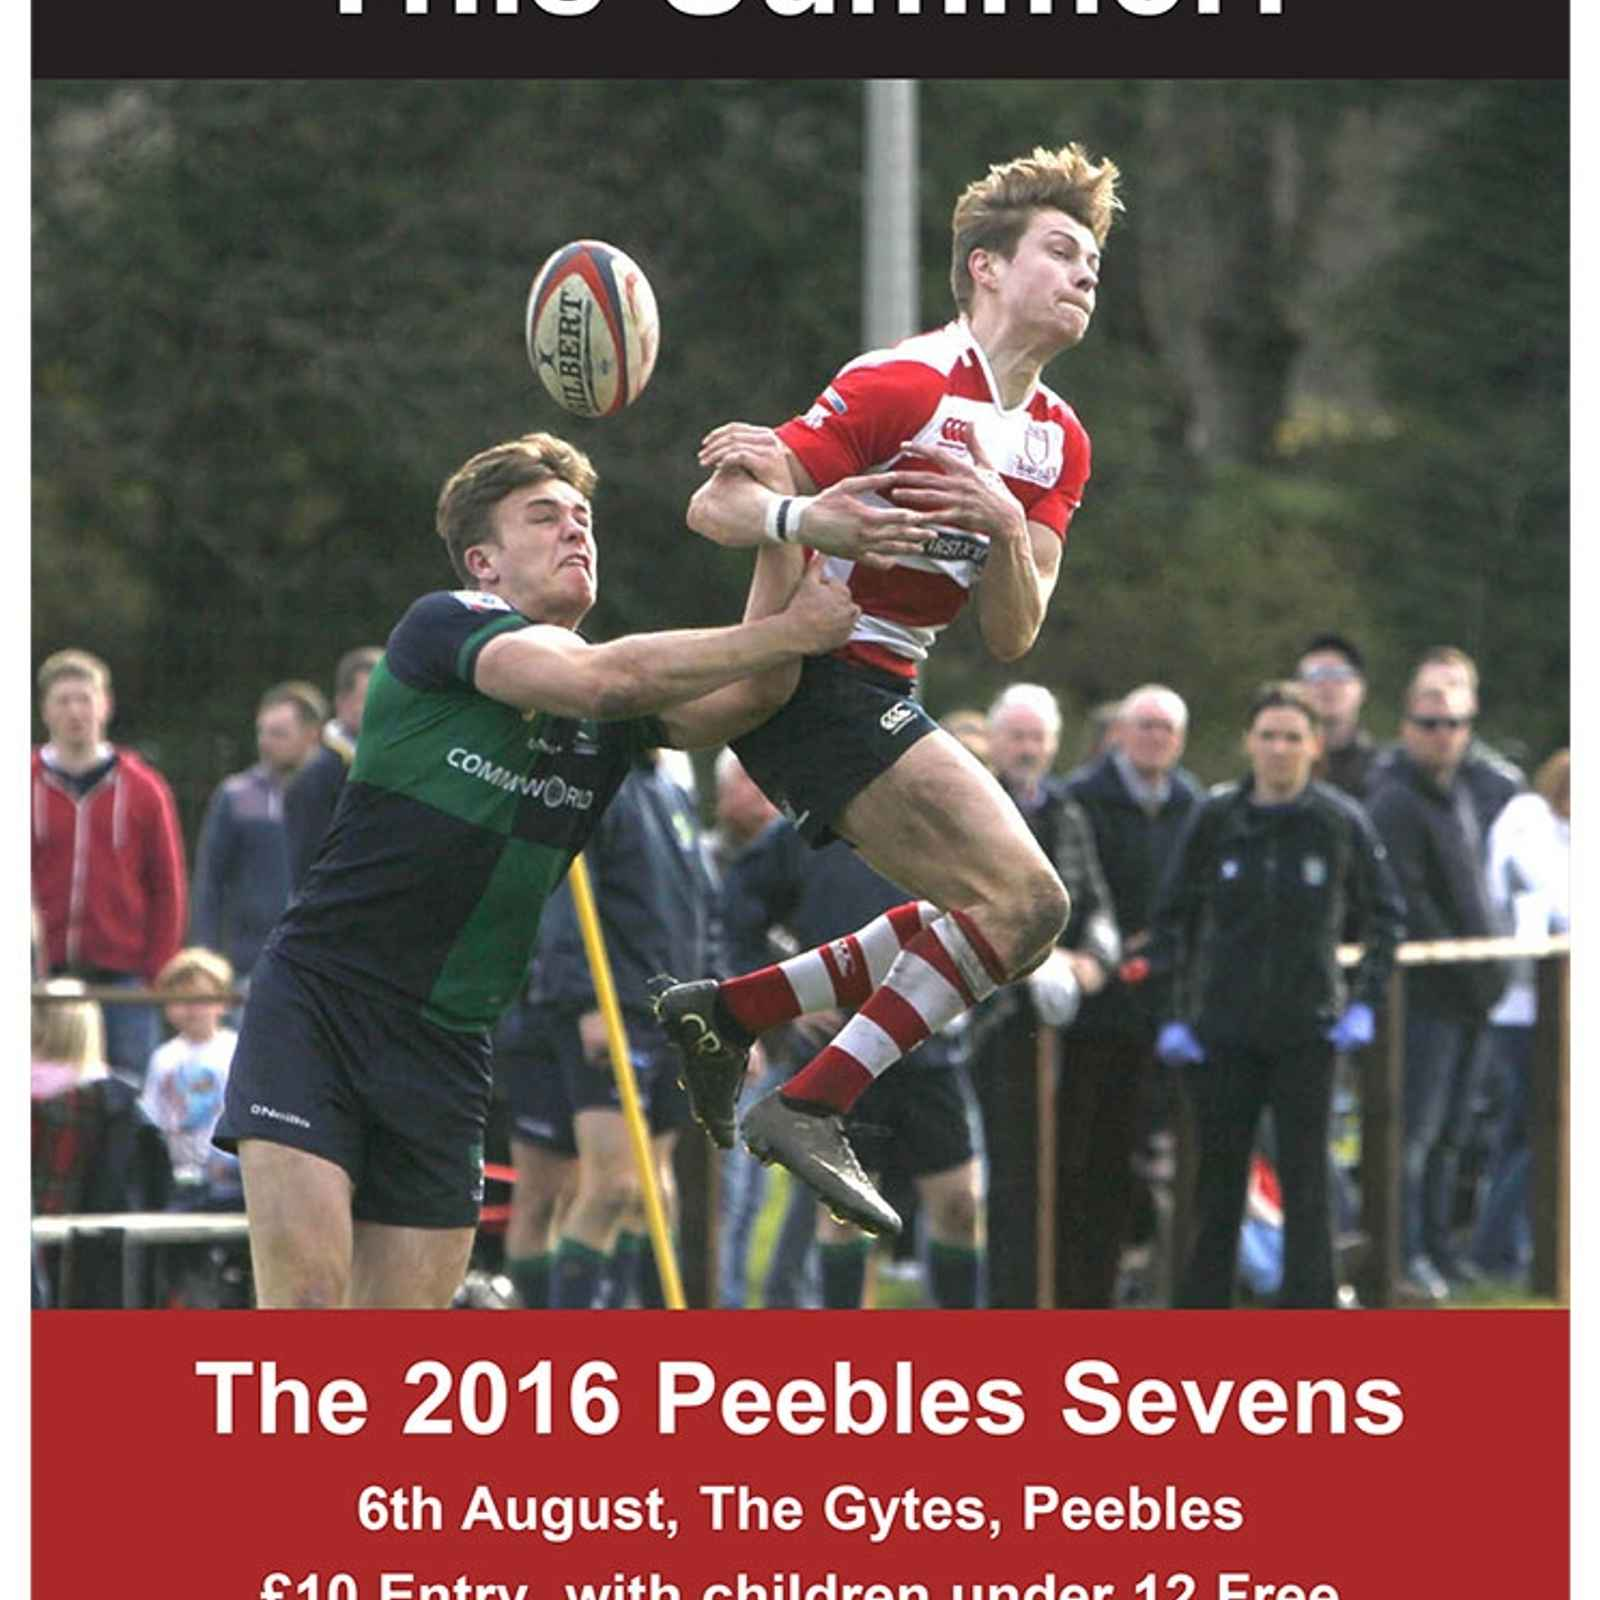 Peebles Rugby 7's - Saturday 6th August 2016